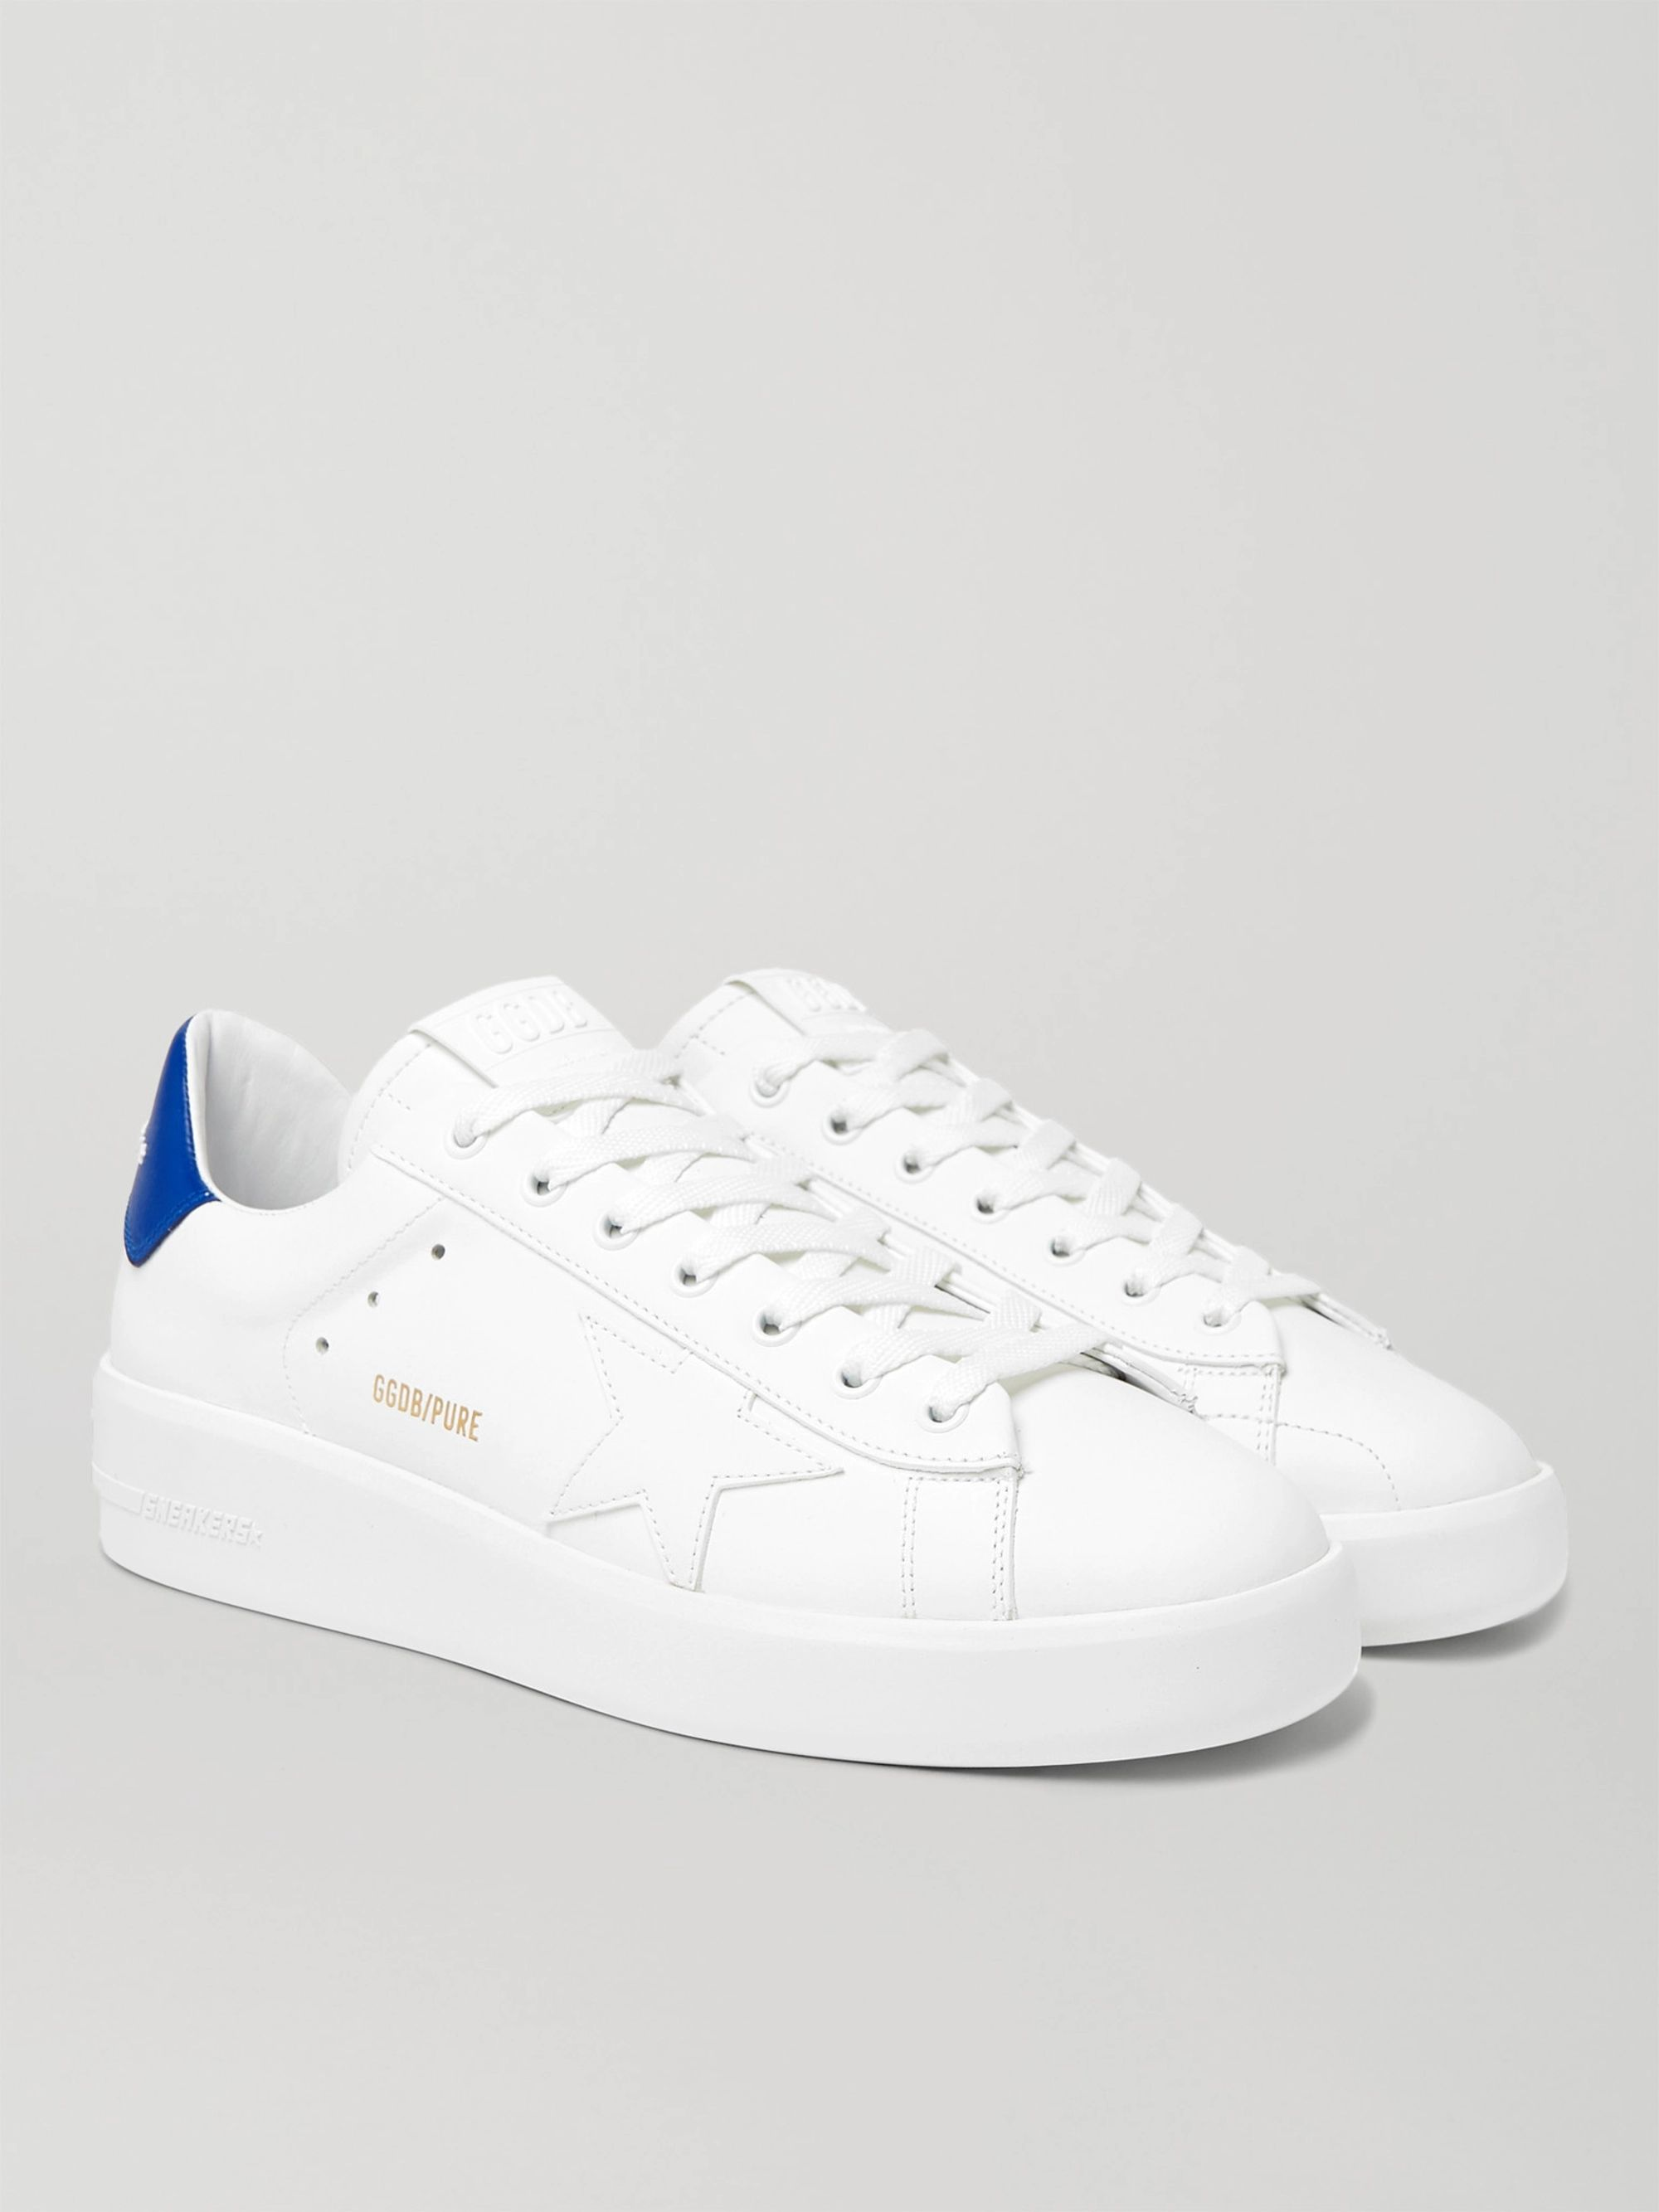 골든구스 Golden Goose Purestar Leather Sneakers,White